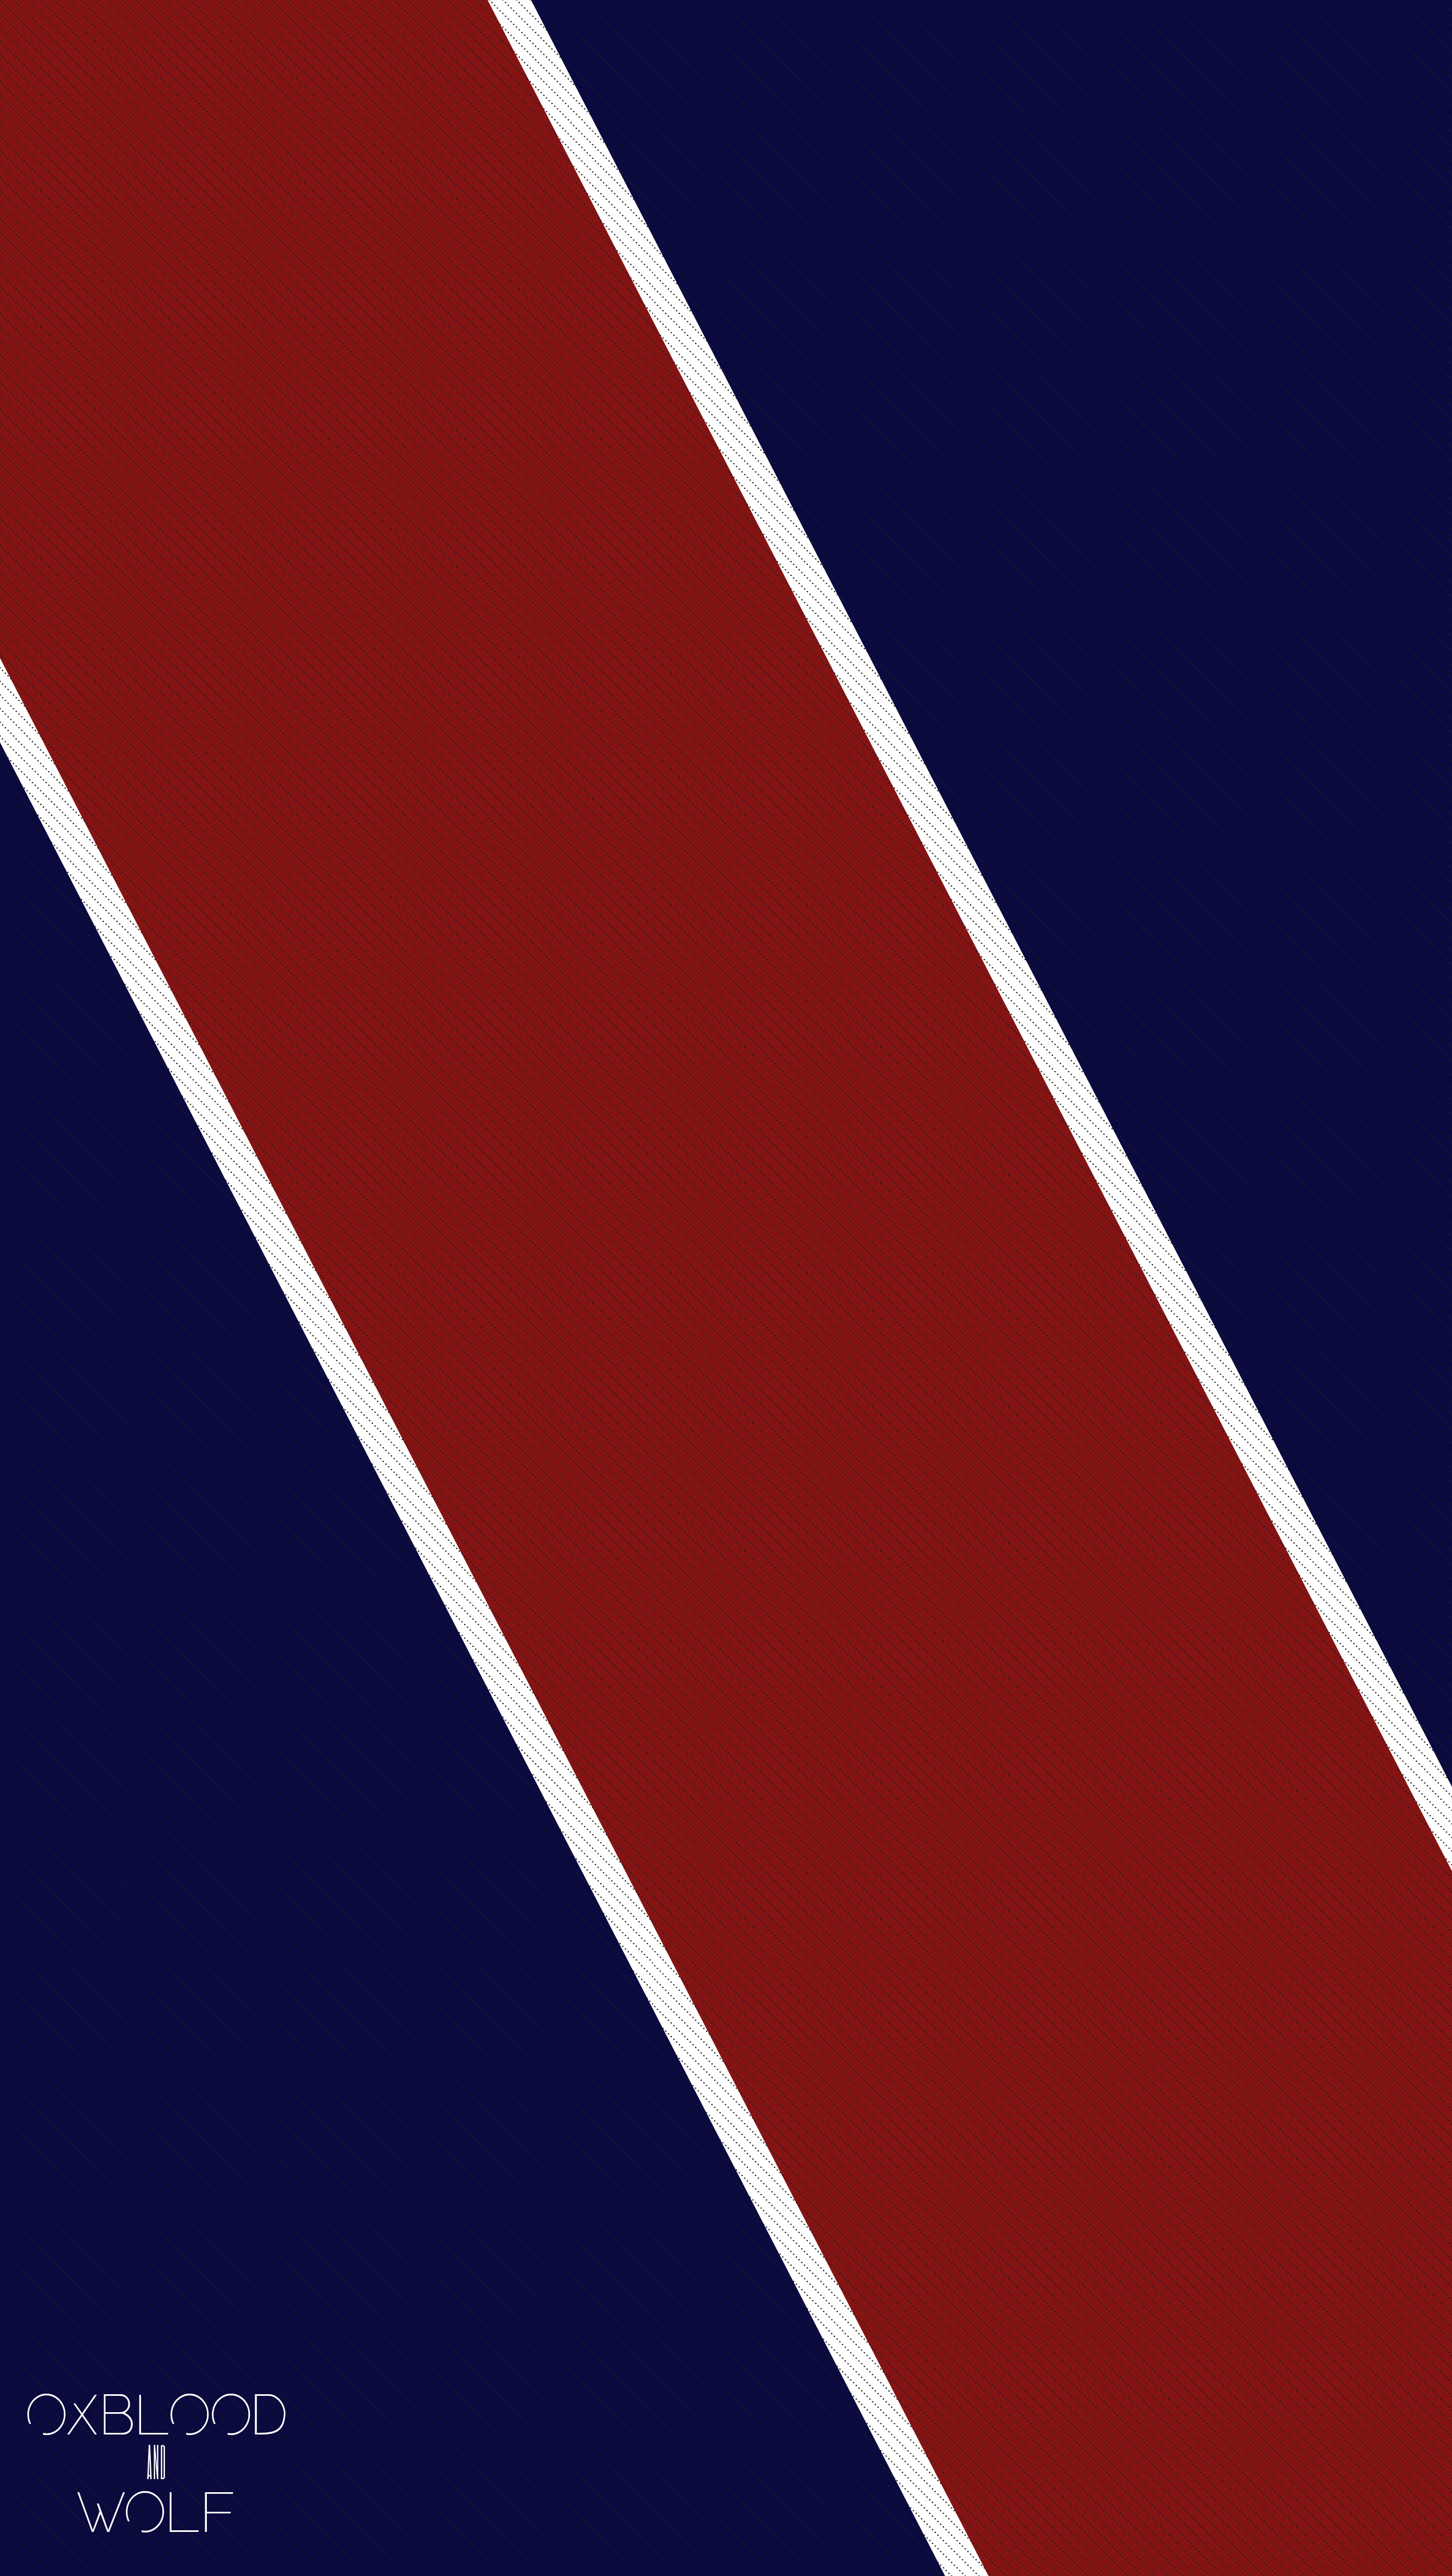 Polo Ralph Lauren Wallpaper